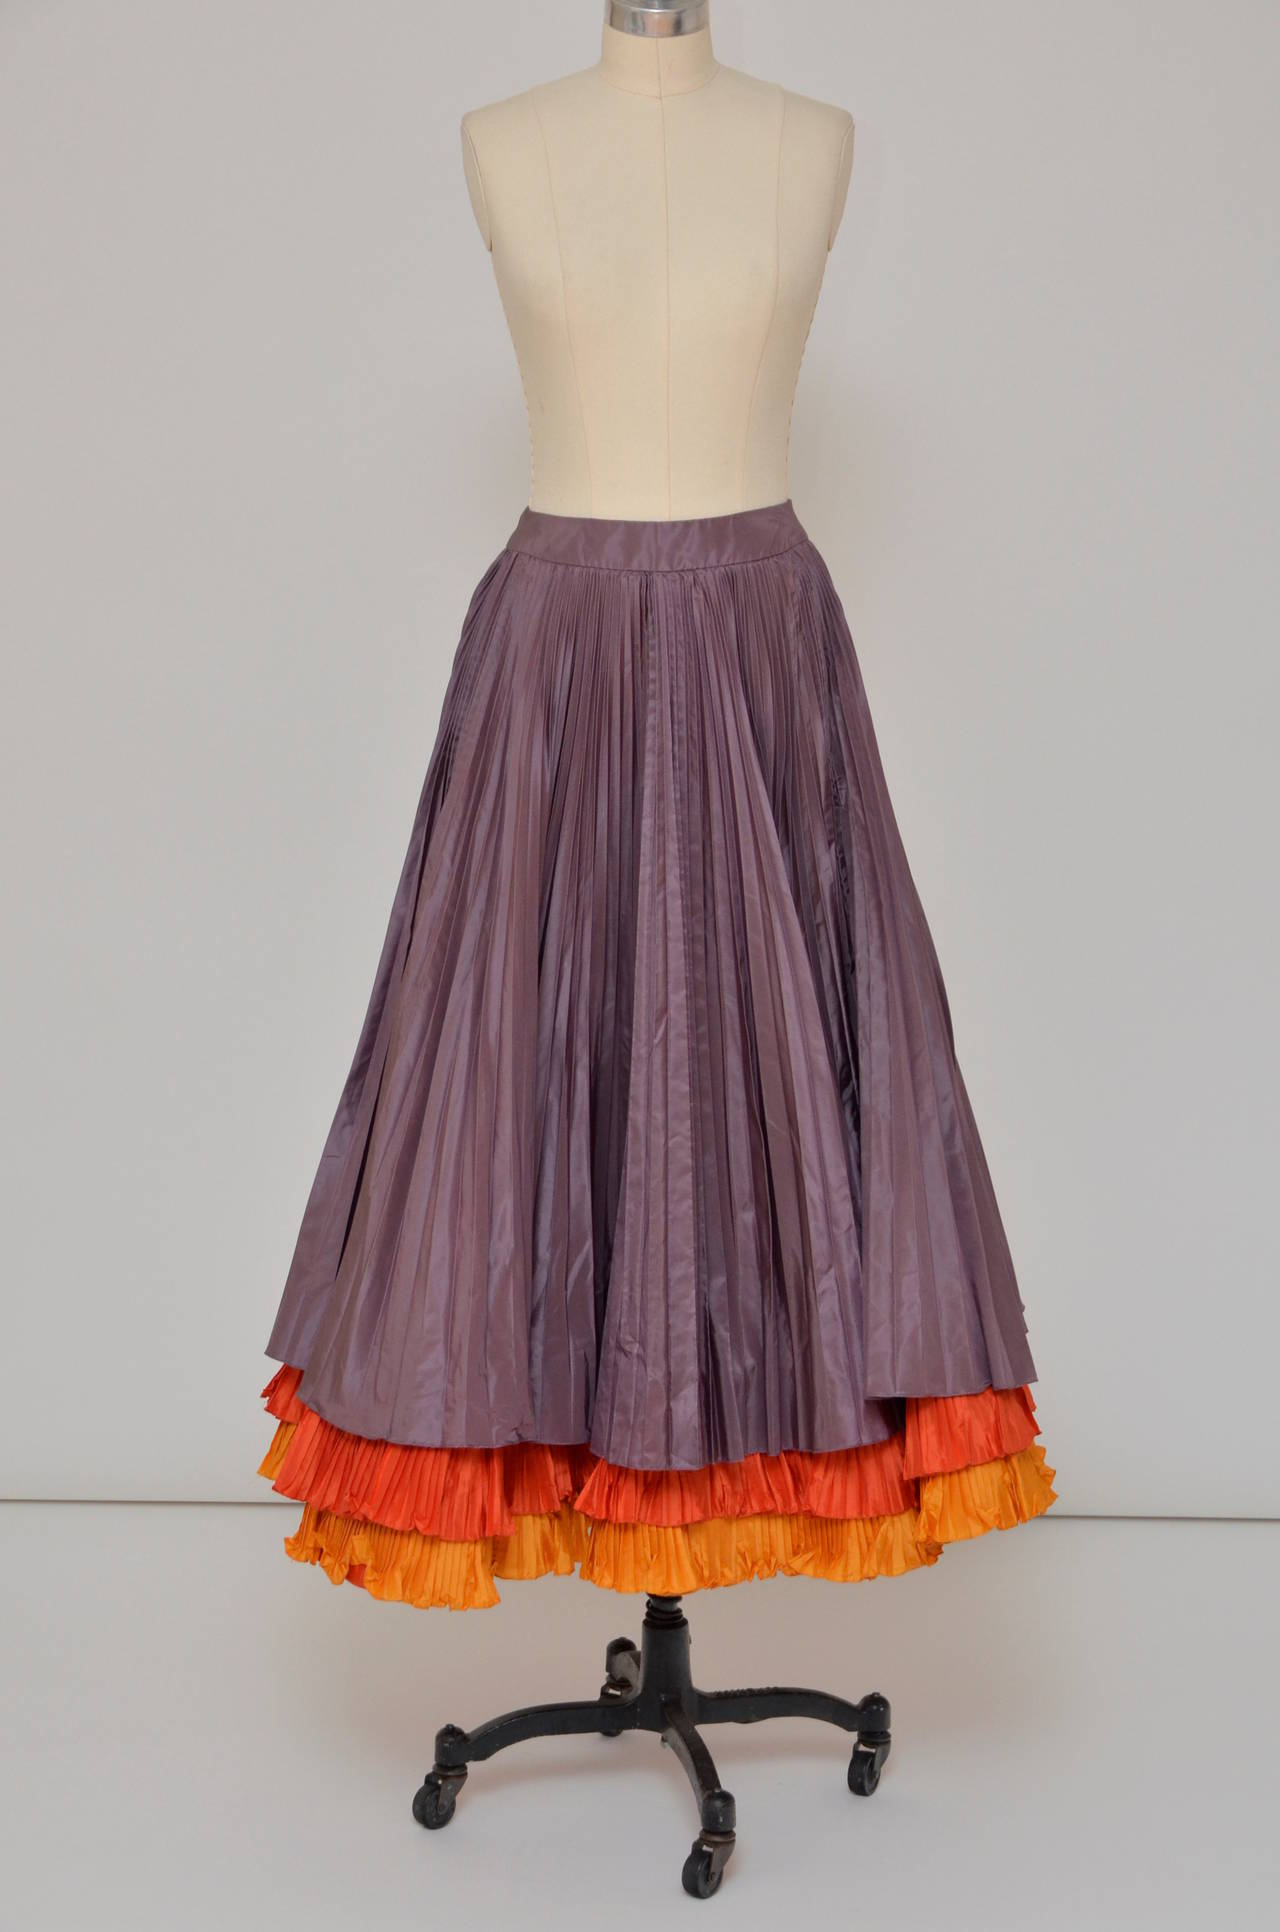 oscar de la renta vintage skirt mint for sale at 1stdibs